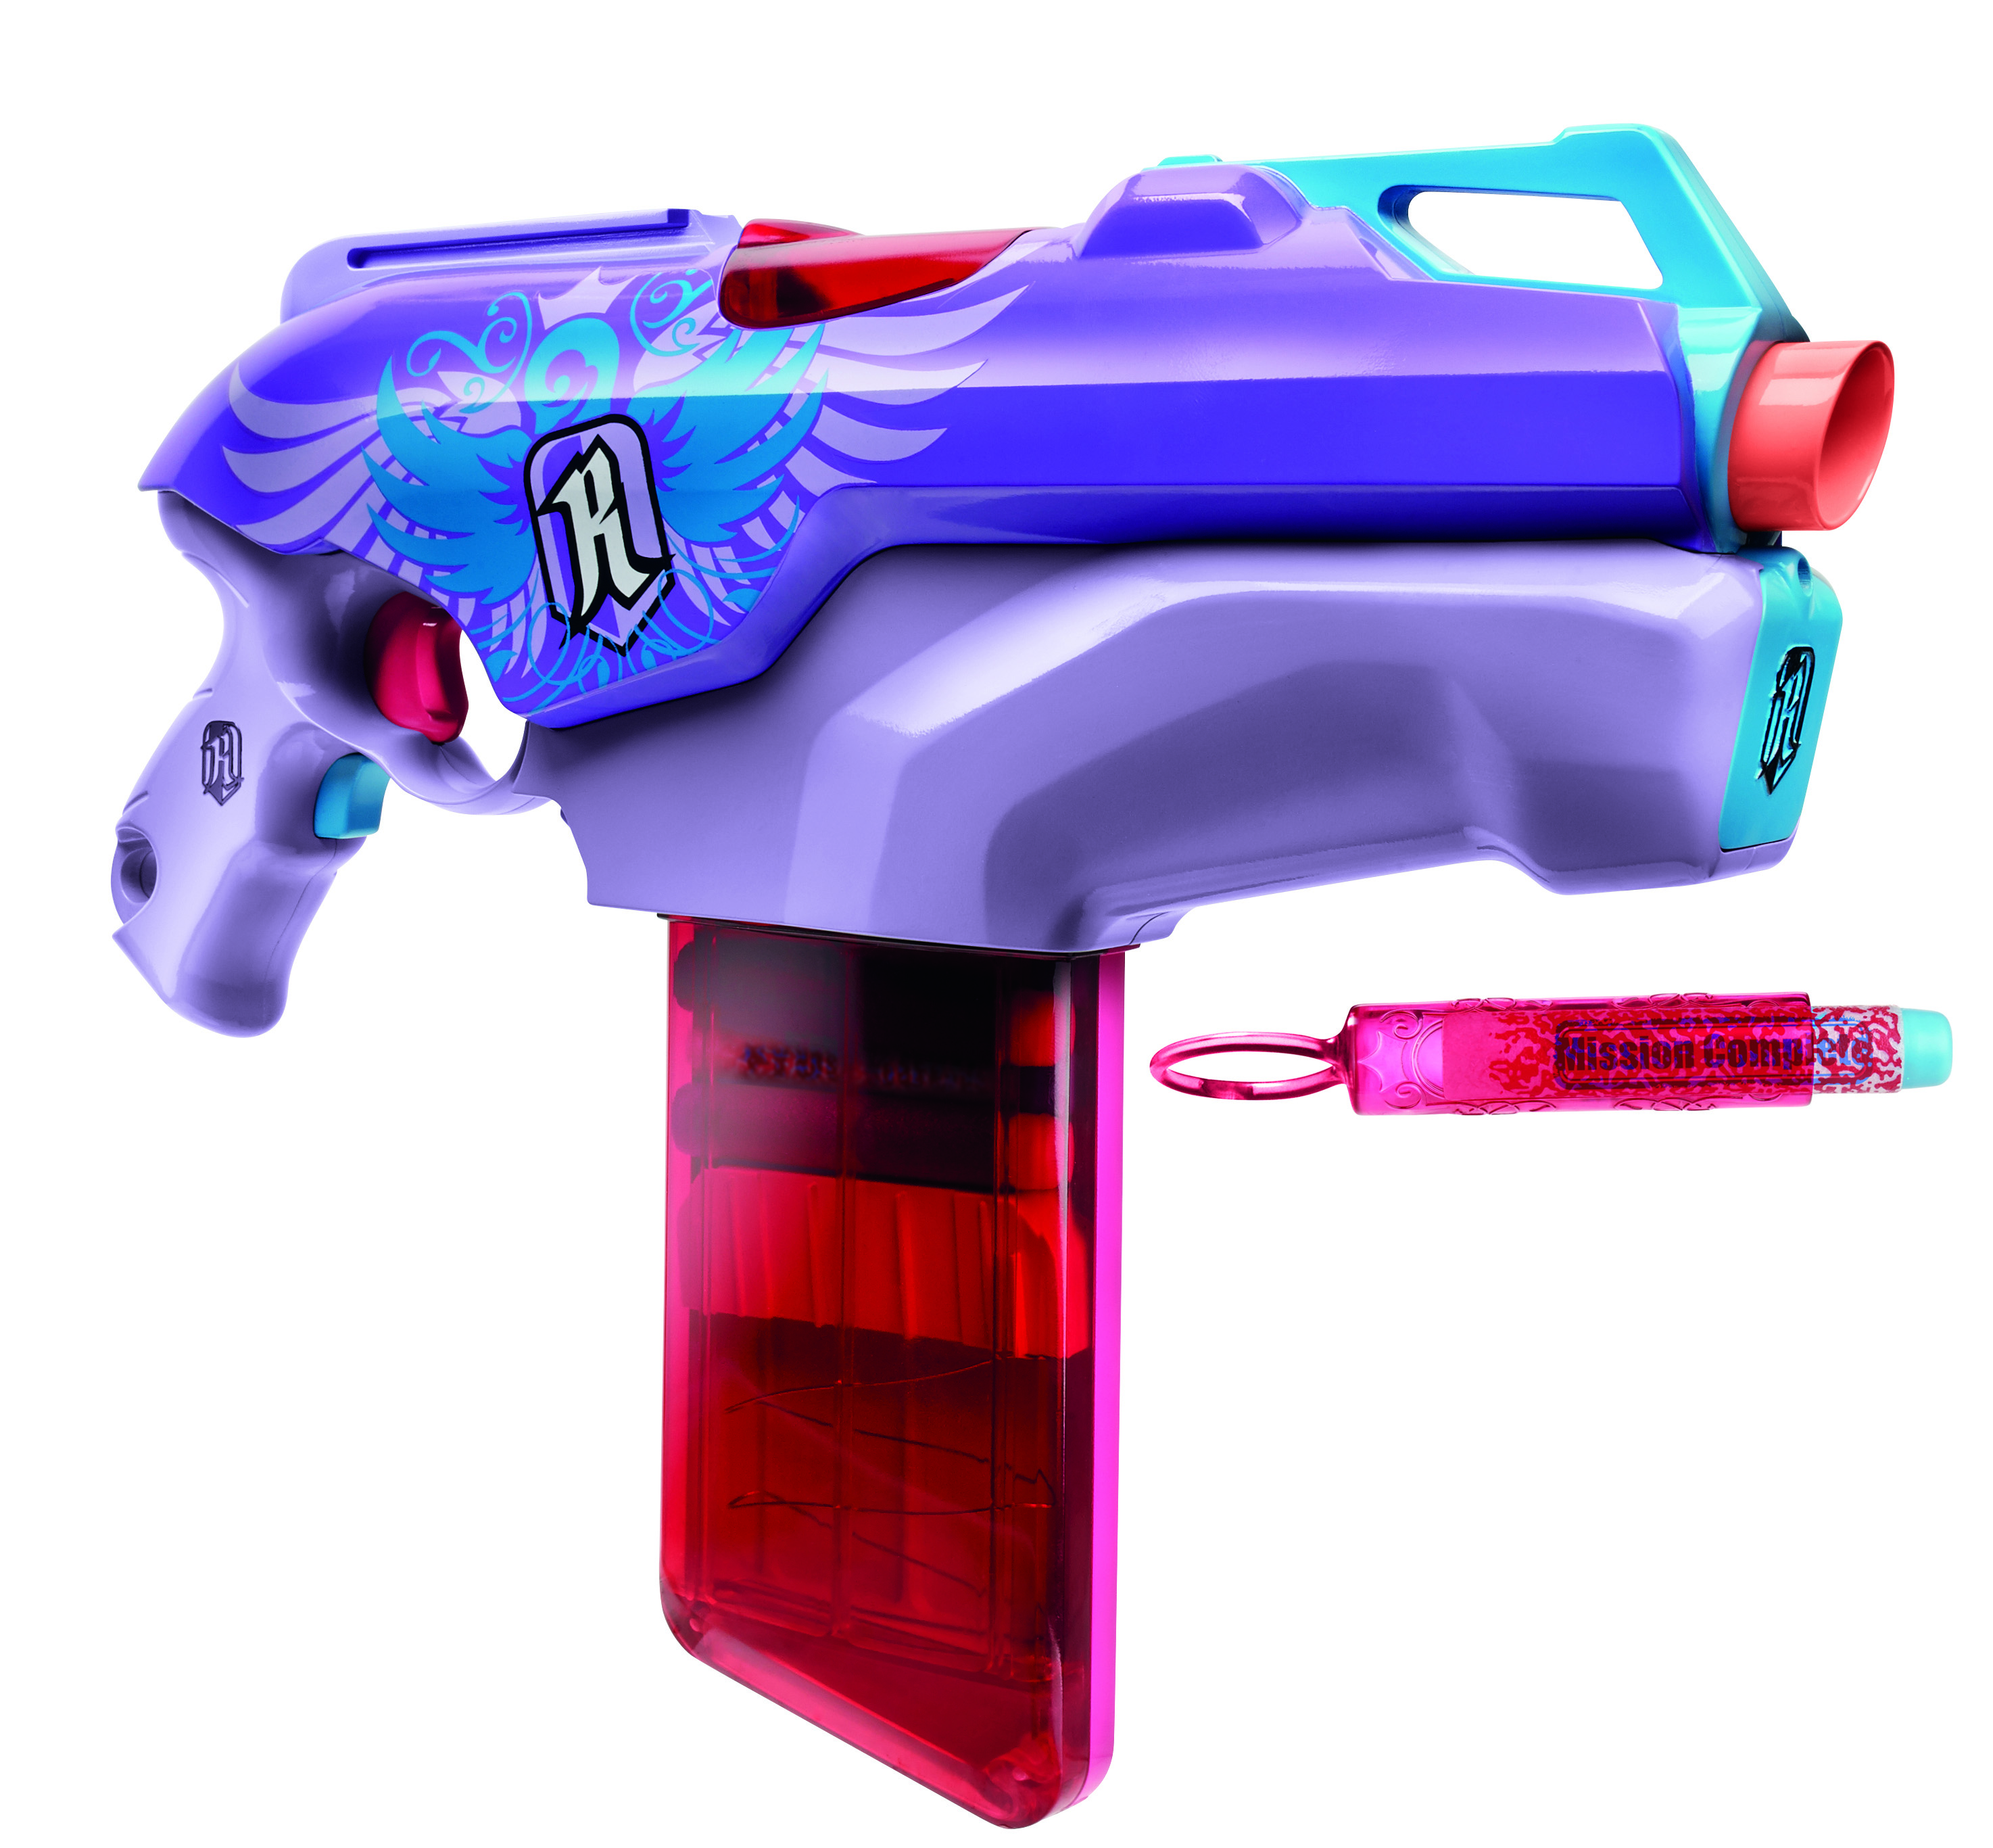 "<strong>Nerf Rebelle Rapid Red Blaster</strong>                                                                      Last year, Nerf decided to even the battlefield and create a new line of guns, arrows and crossbows specifically for girls. The resulting <a href=""http://www.hasbro.com/rebelle/en_us/"">Nerf Rebelle</a> line takes a cue from the success of <i>The Hunger Games</i>: The box is covered with tweens styled like that series' hero, Katniss Everdeen."